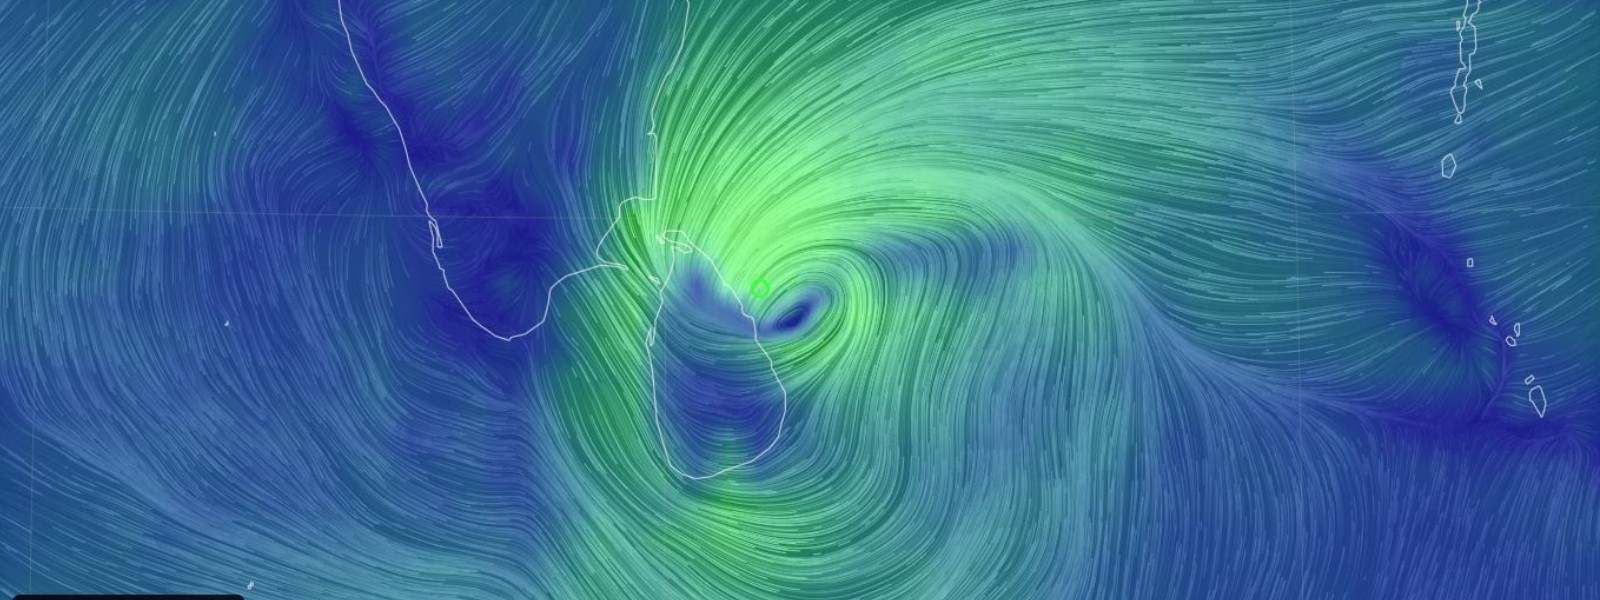 Cyclone Burevi; 2467 structures across 12 districts damaged